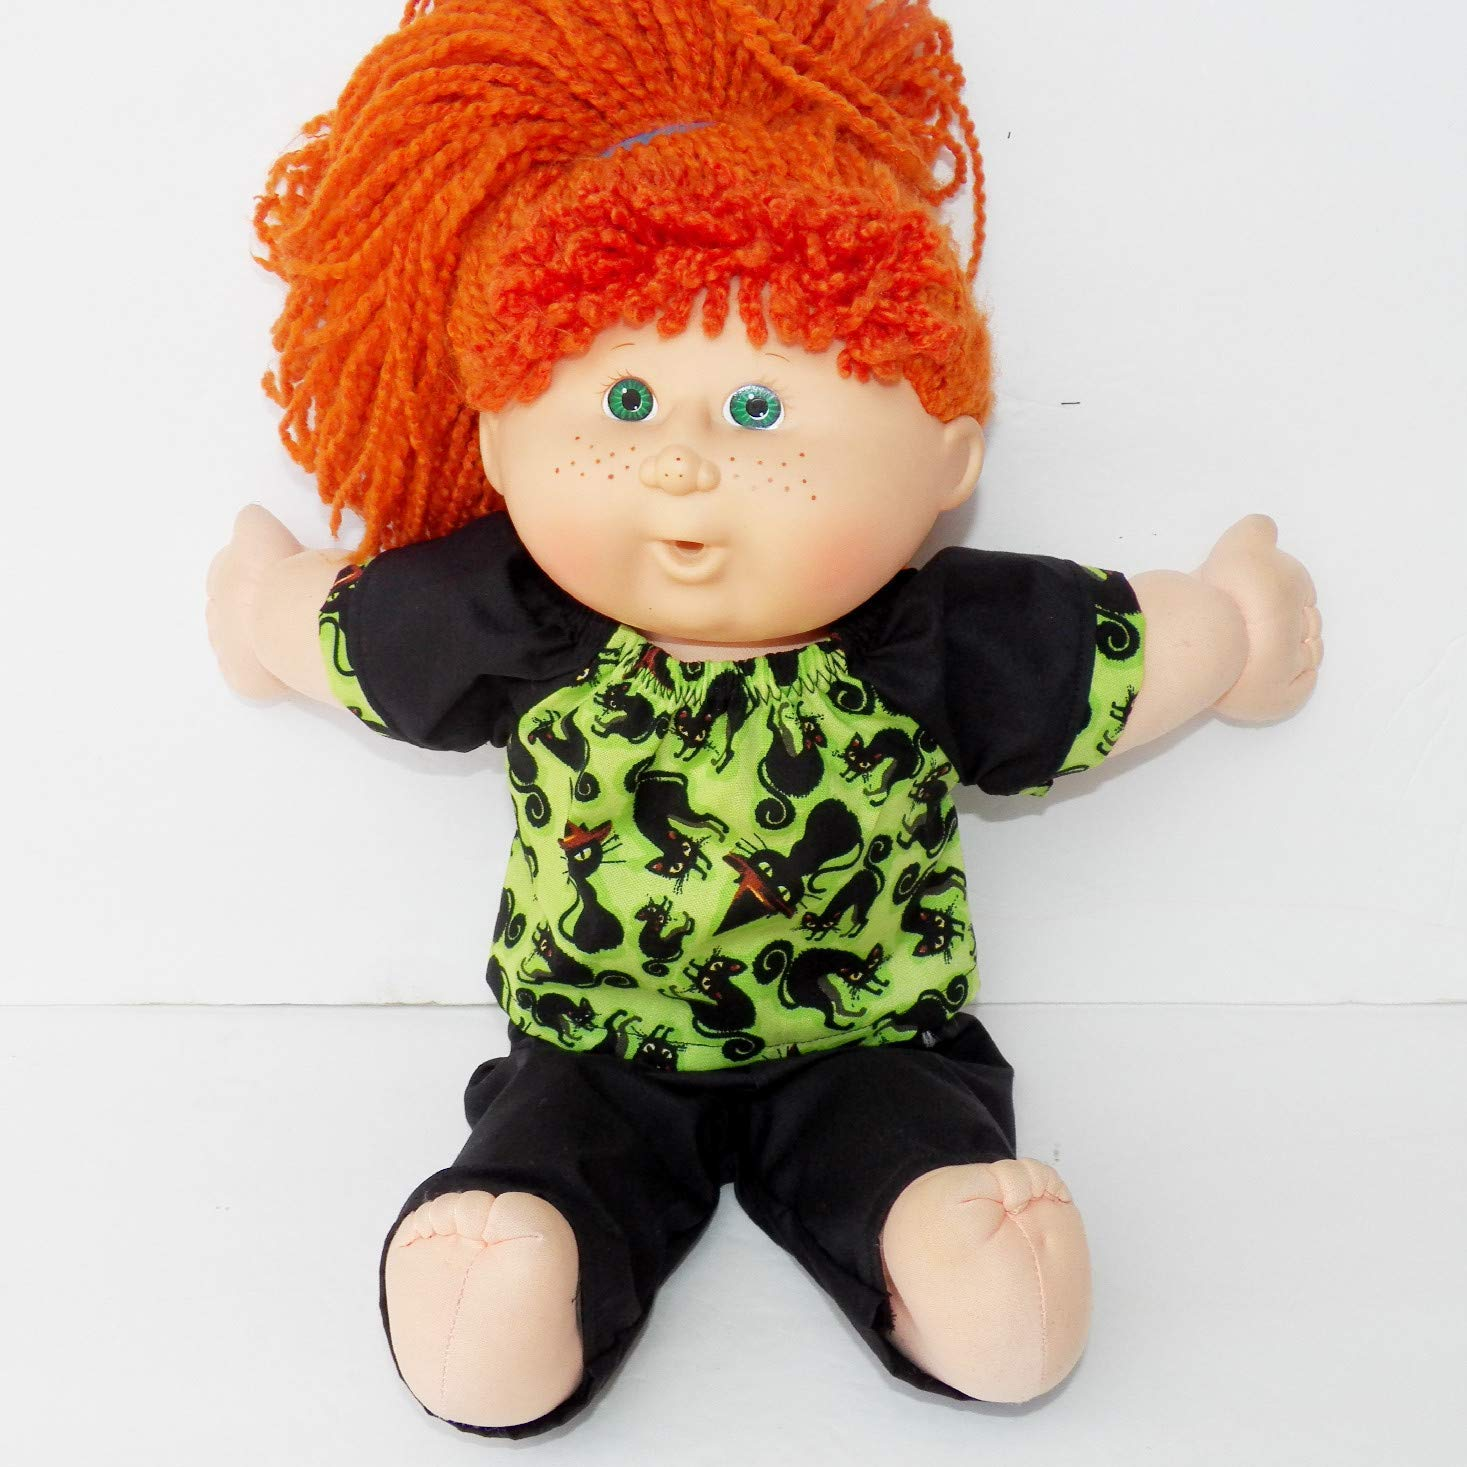 Cabbage Patch Doll Clothes 16 Inch Girl Size Black Halloween Cat Skirt Outfit No Doll